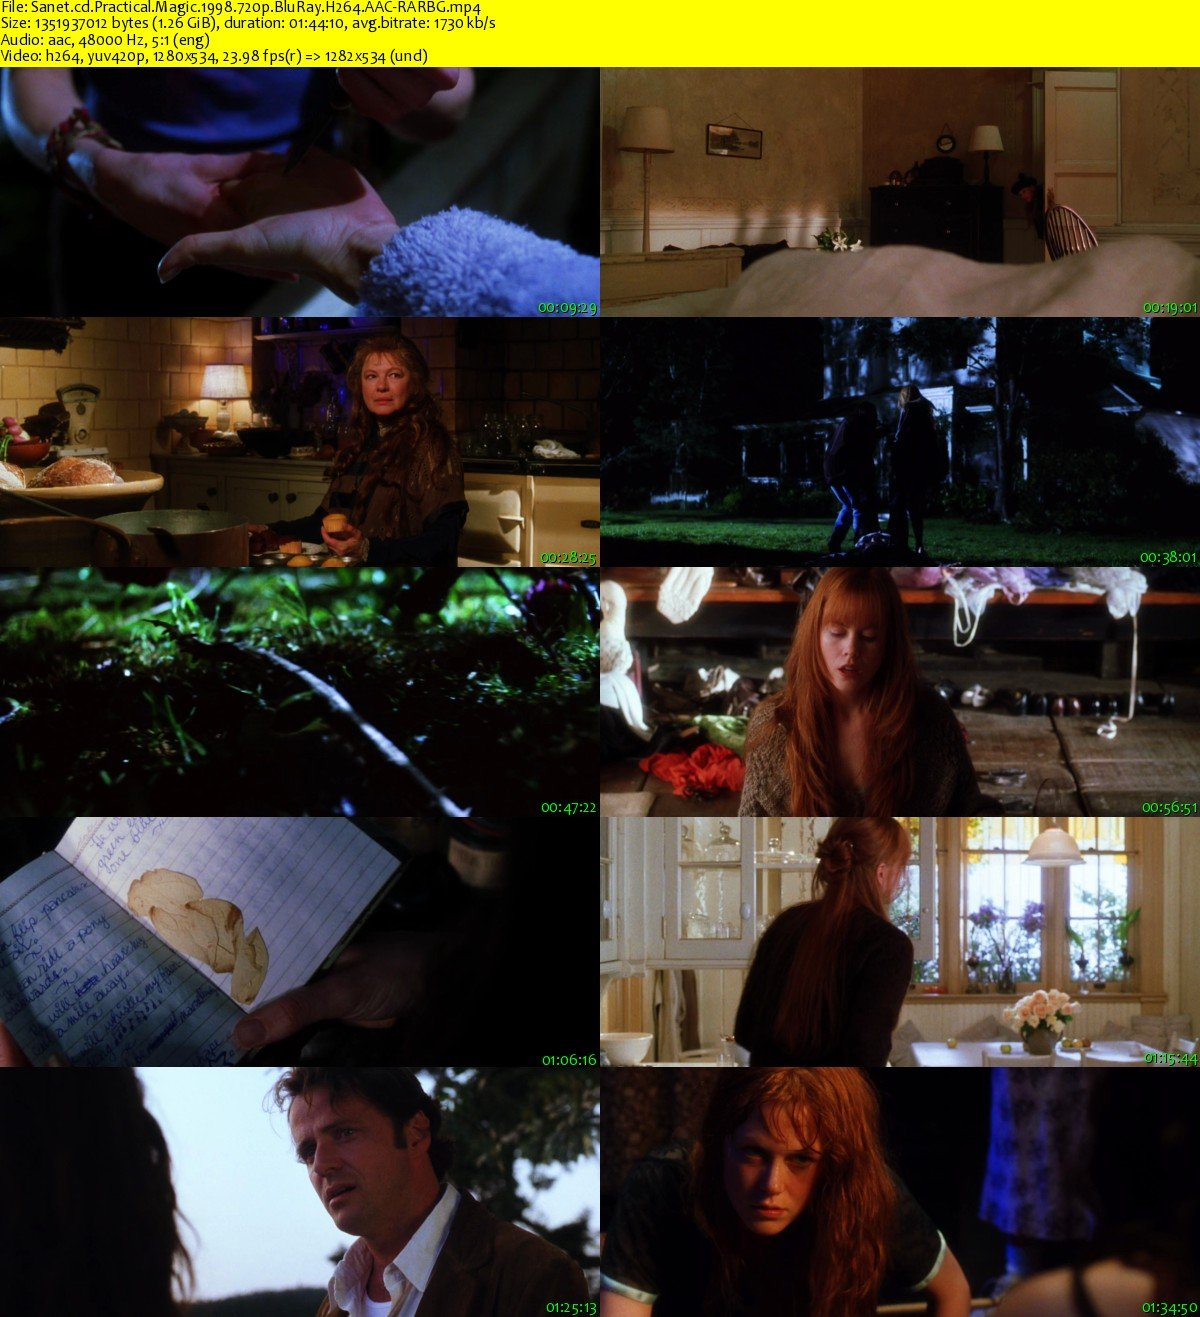 an analysis of practical magic in 1998 Friday, october 16, 1998  practical magic is the story of the two owens sisters, dark-haired sally (sandra bullock) and extravagantly auburn gillian.